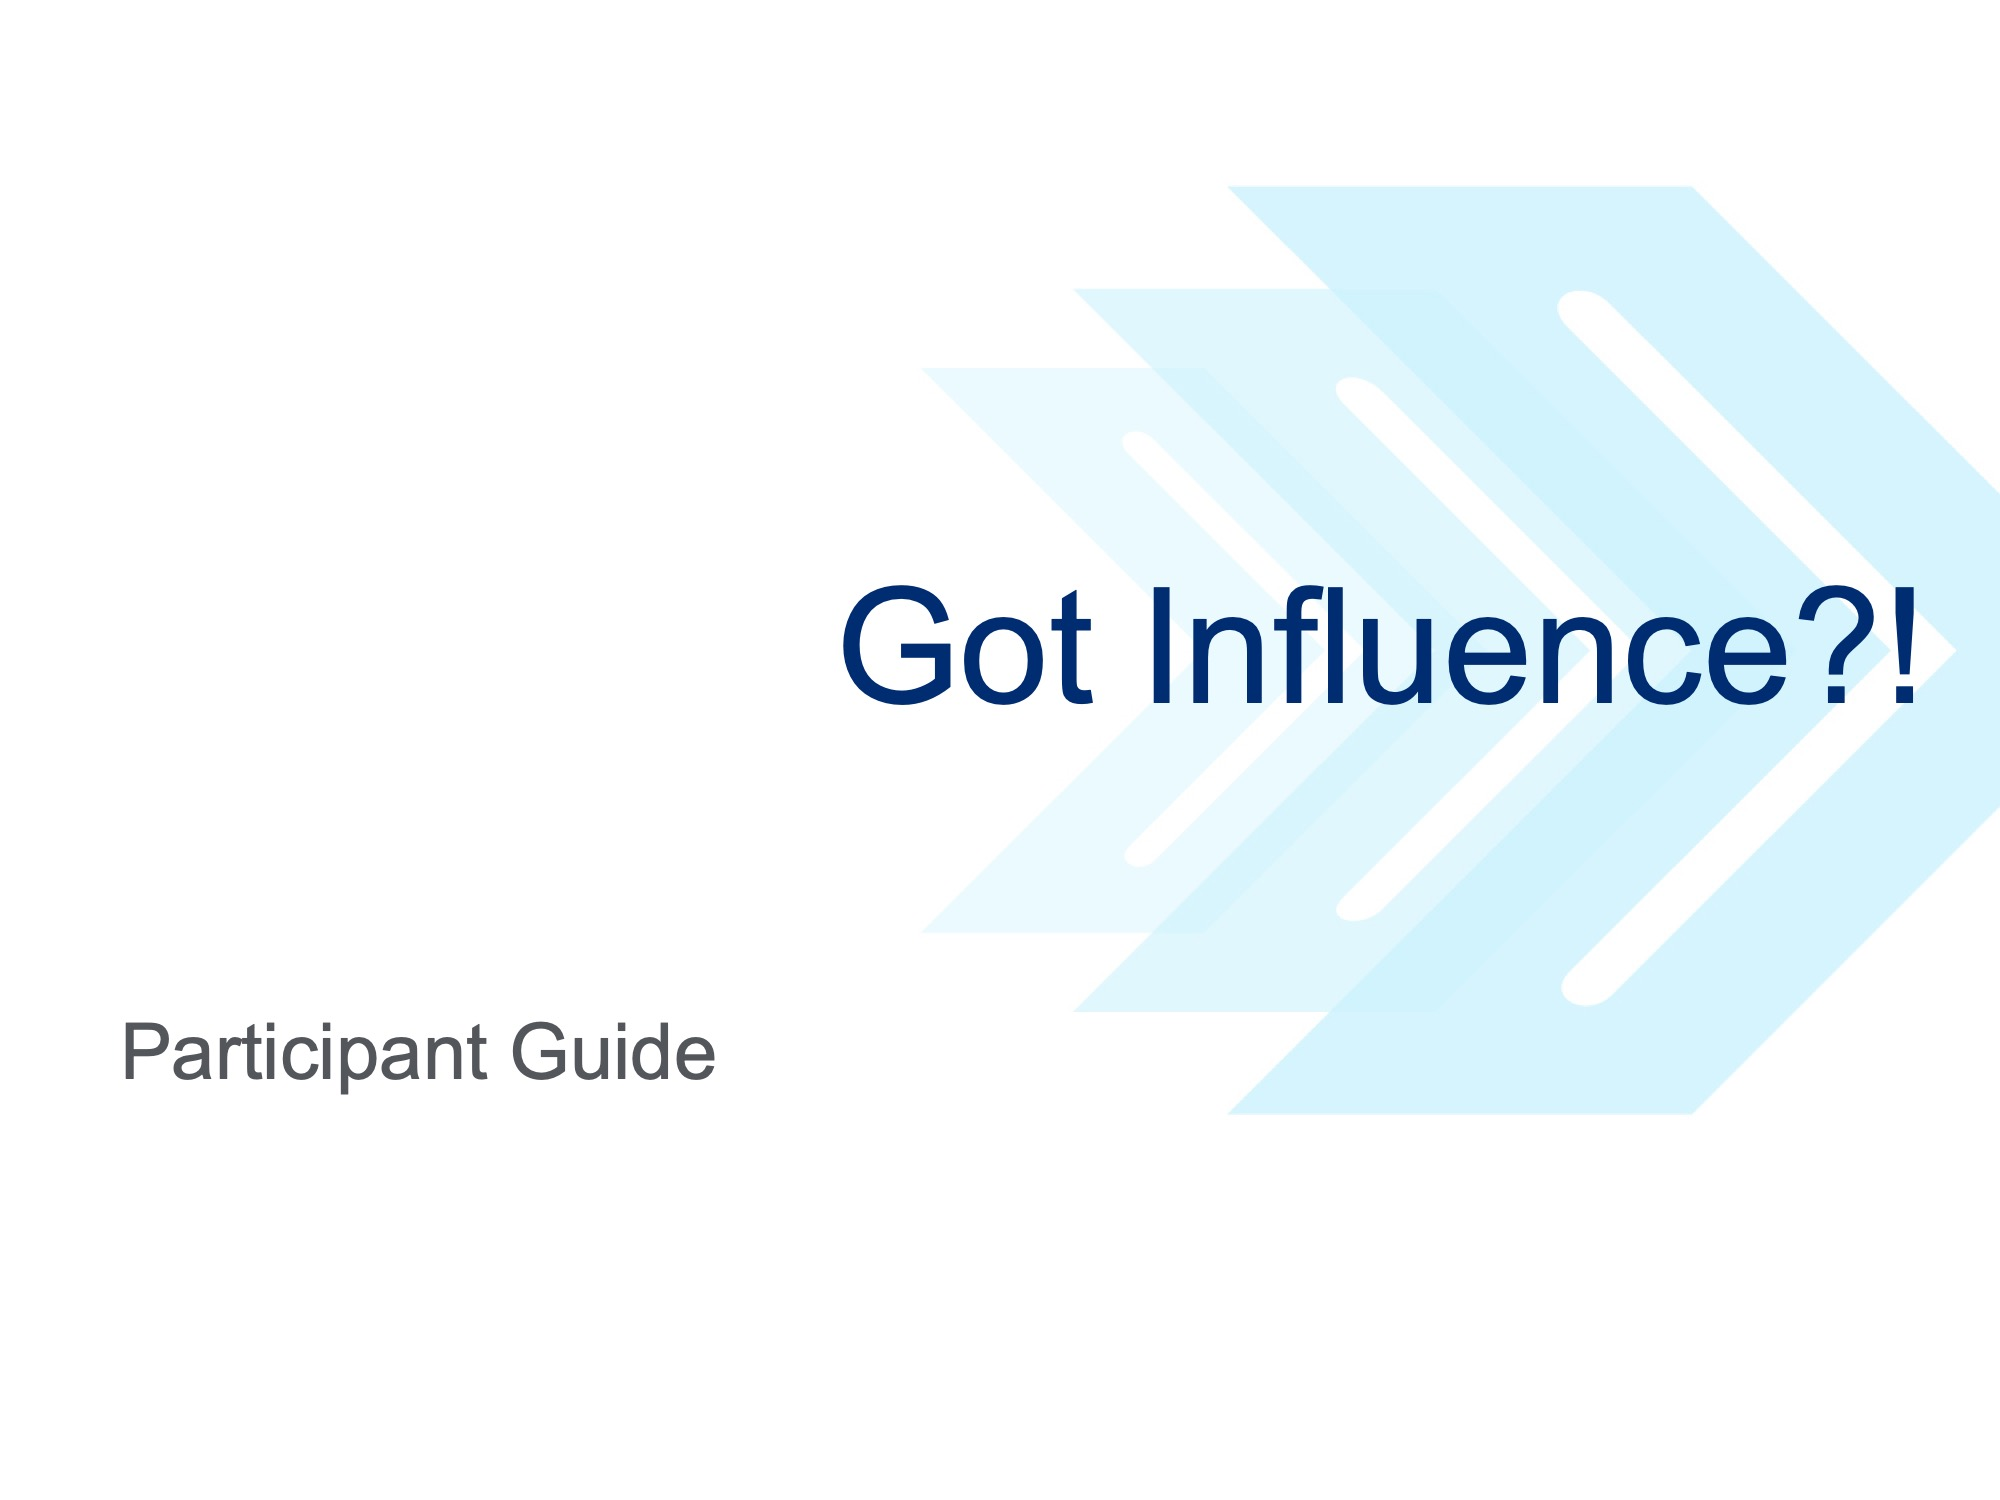 Got influence?! - Laine Joelson Cohen, Director, Citi LearningandDeborah Borg, Chief Human Resources & Communications Officer, Bunge Limited